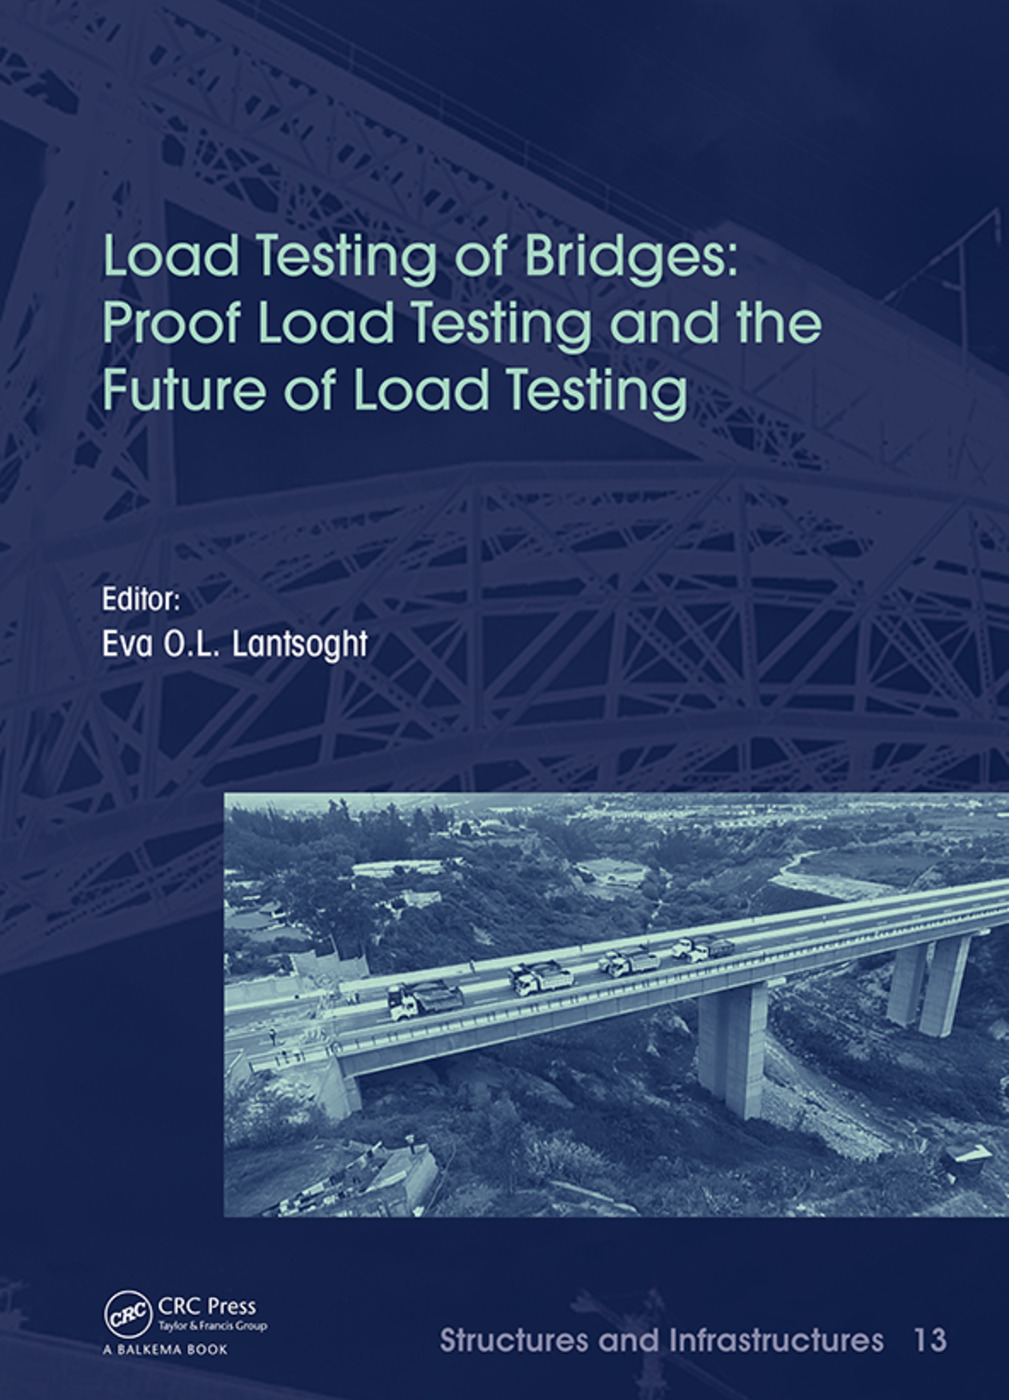 Load testing bridges volume 13